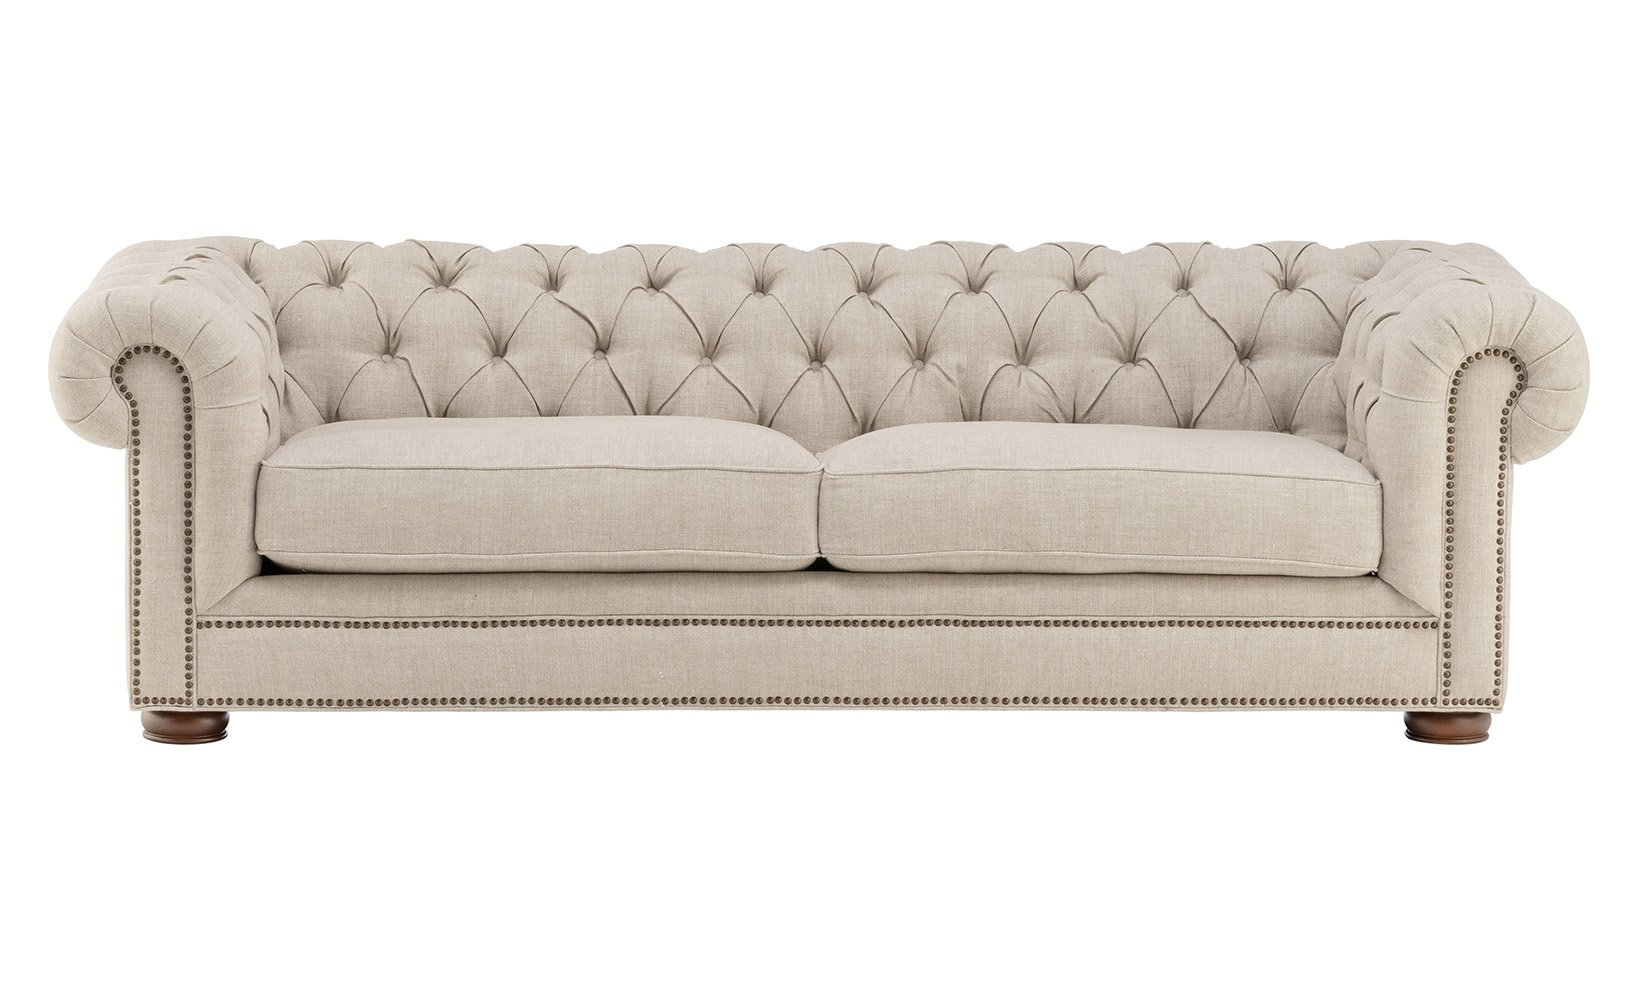 Huomo Linen Chesterfield Sofa Chesterfield Sofa Upholstered Sofa Living Room Leather